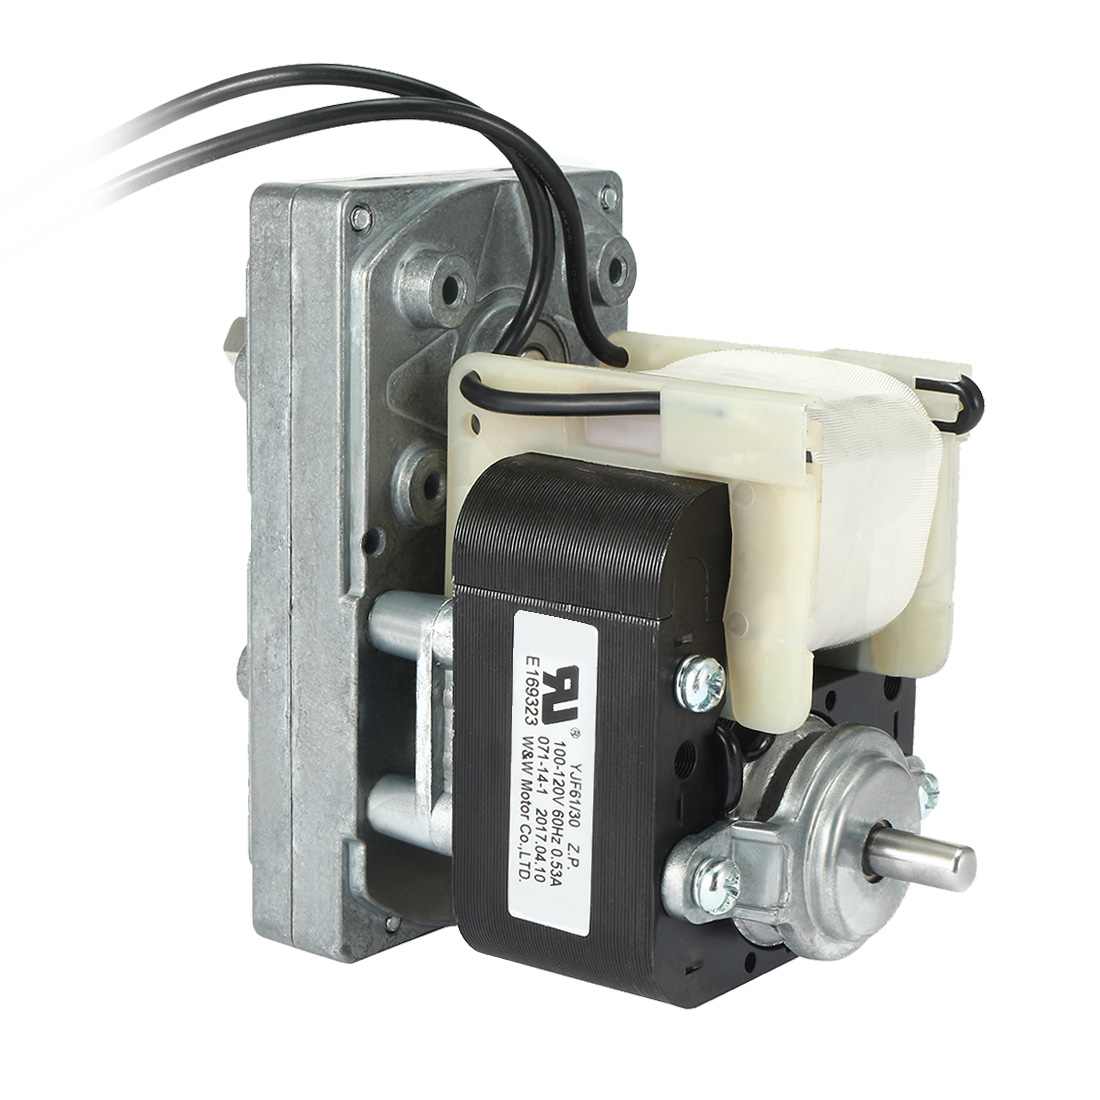 FC-YJ61 AC100V-120V 60Hz 7.5RPM CW Shaded Pole Motor Universal Geared Motor